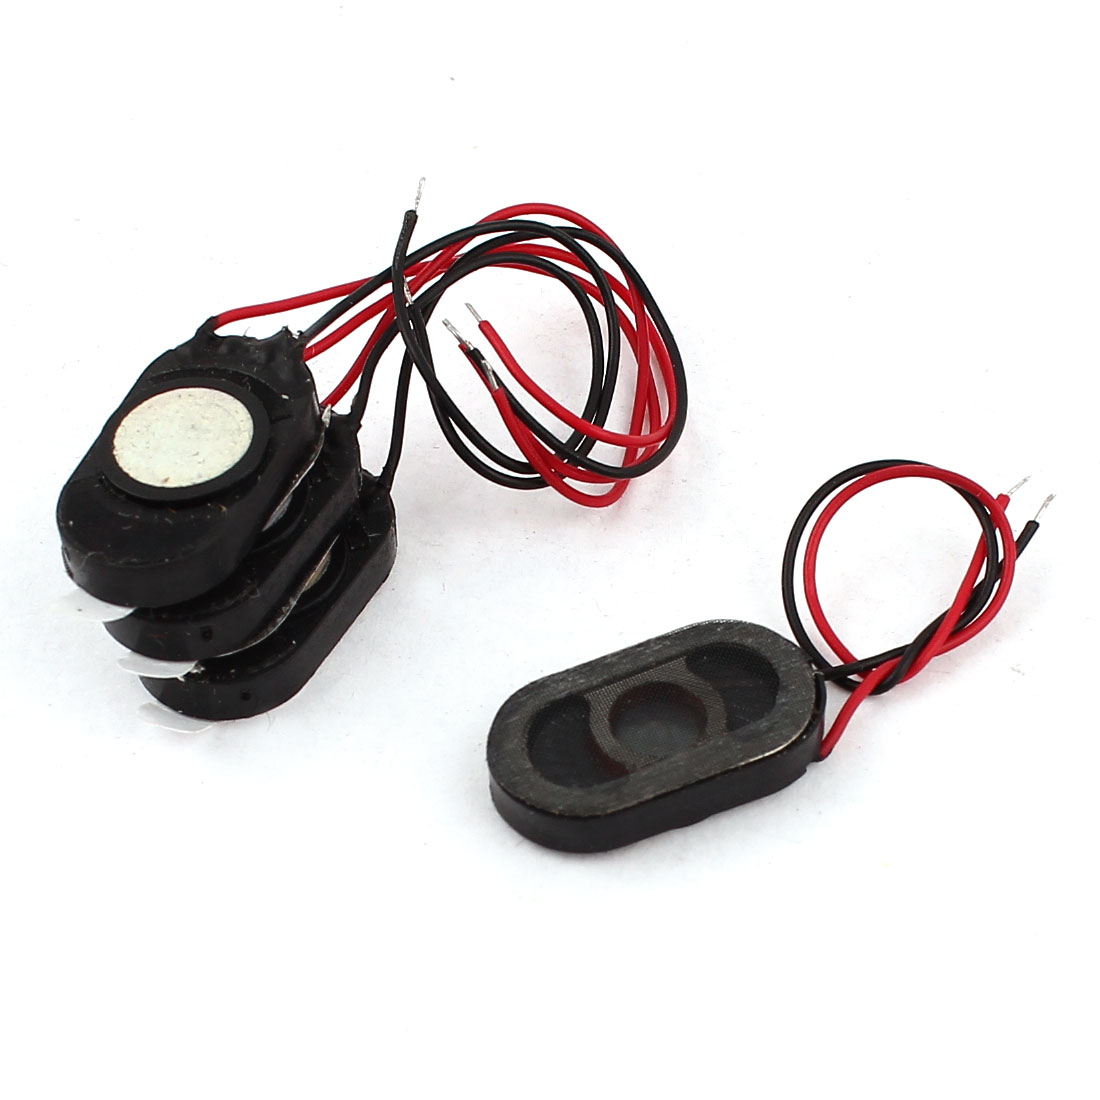 4Pcs 1W 8 Ohm 2-Wire Oval Shaped Plastic Case MP3 MP4 MP5 Autio Player Speaker Loudspeaker Amplifier Trumpet 18mm x 10mm